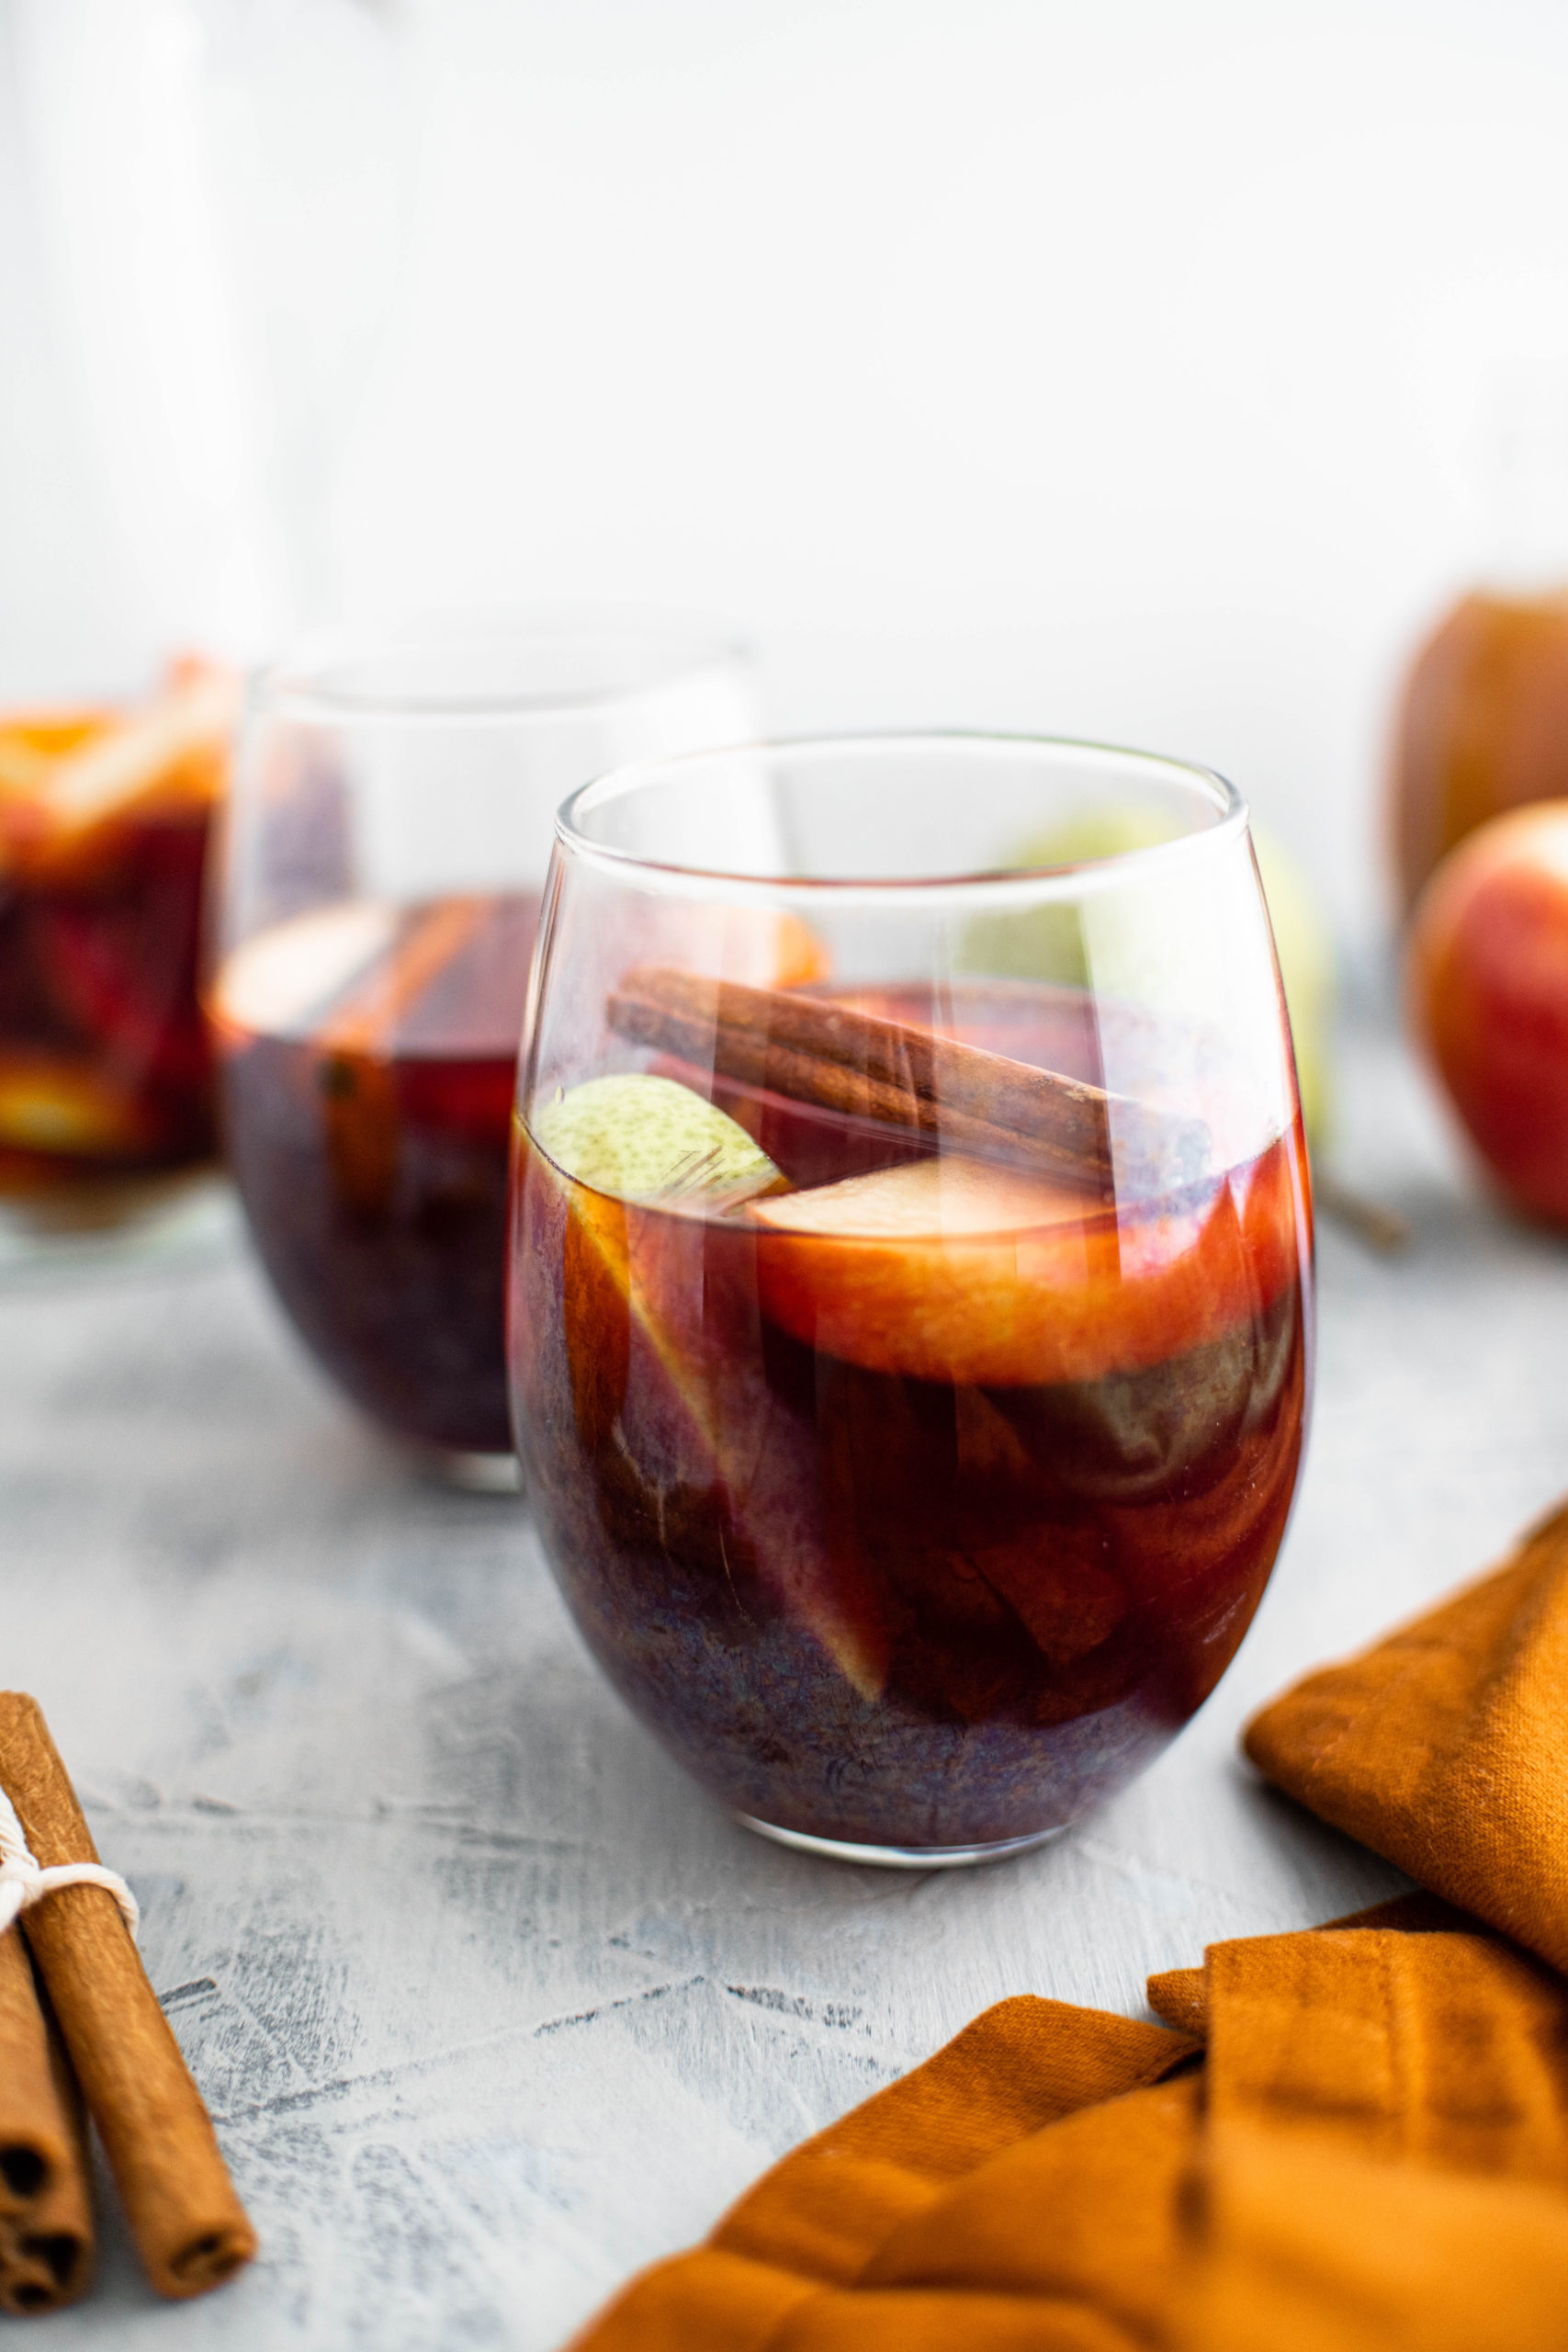 Two glasses of fall sangria with sliced apples, sliced pears, sliced oranges and a cinnamon stick floating in it. Pitcher of sangria in back left corner.